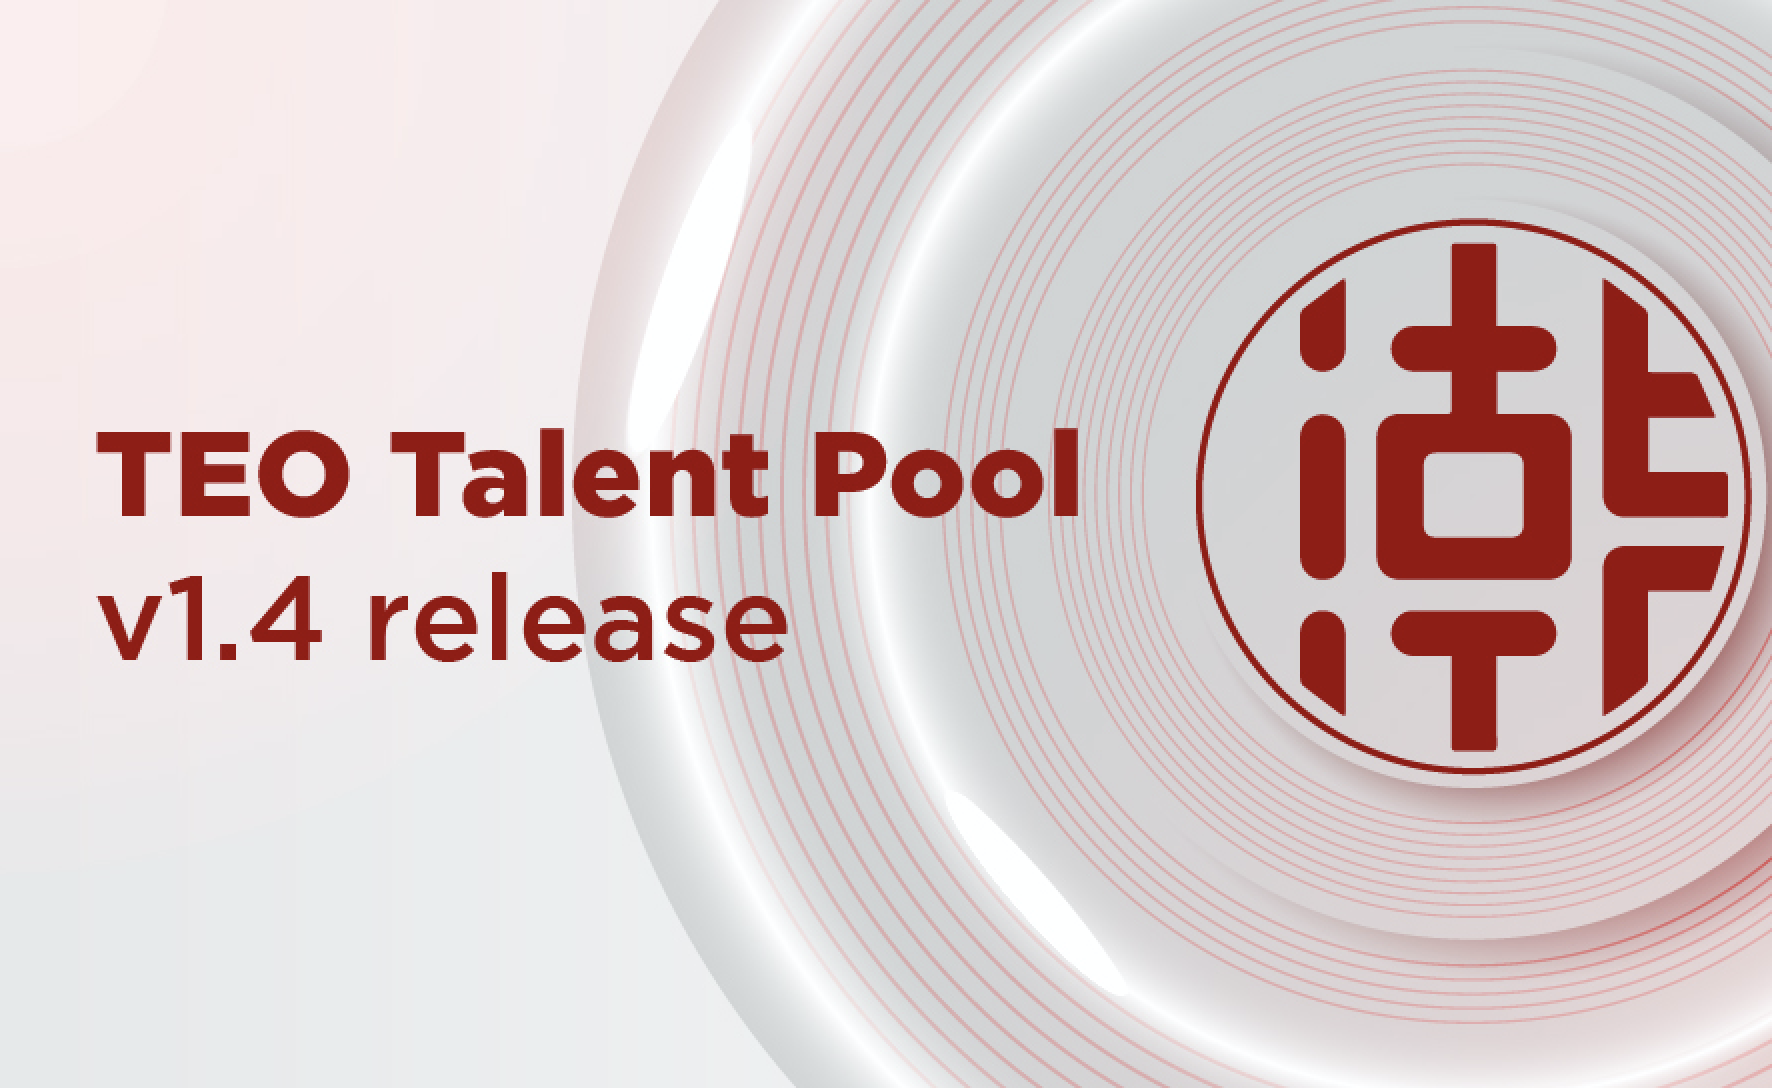 TEO Talent Pool v1.4 is here! Profile, explore and more…